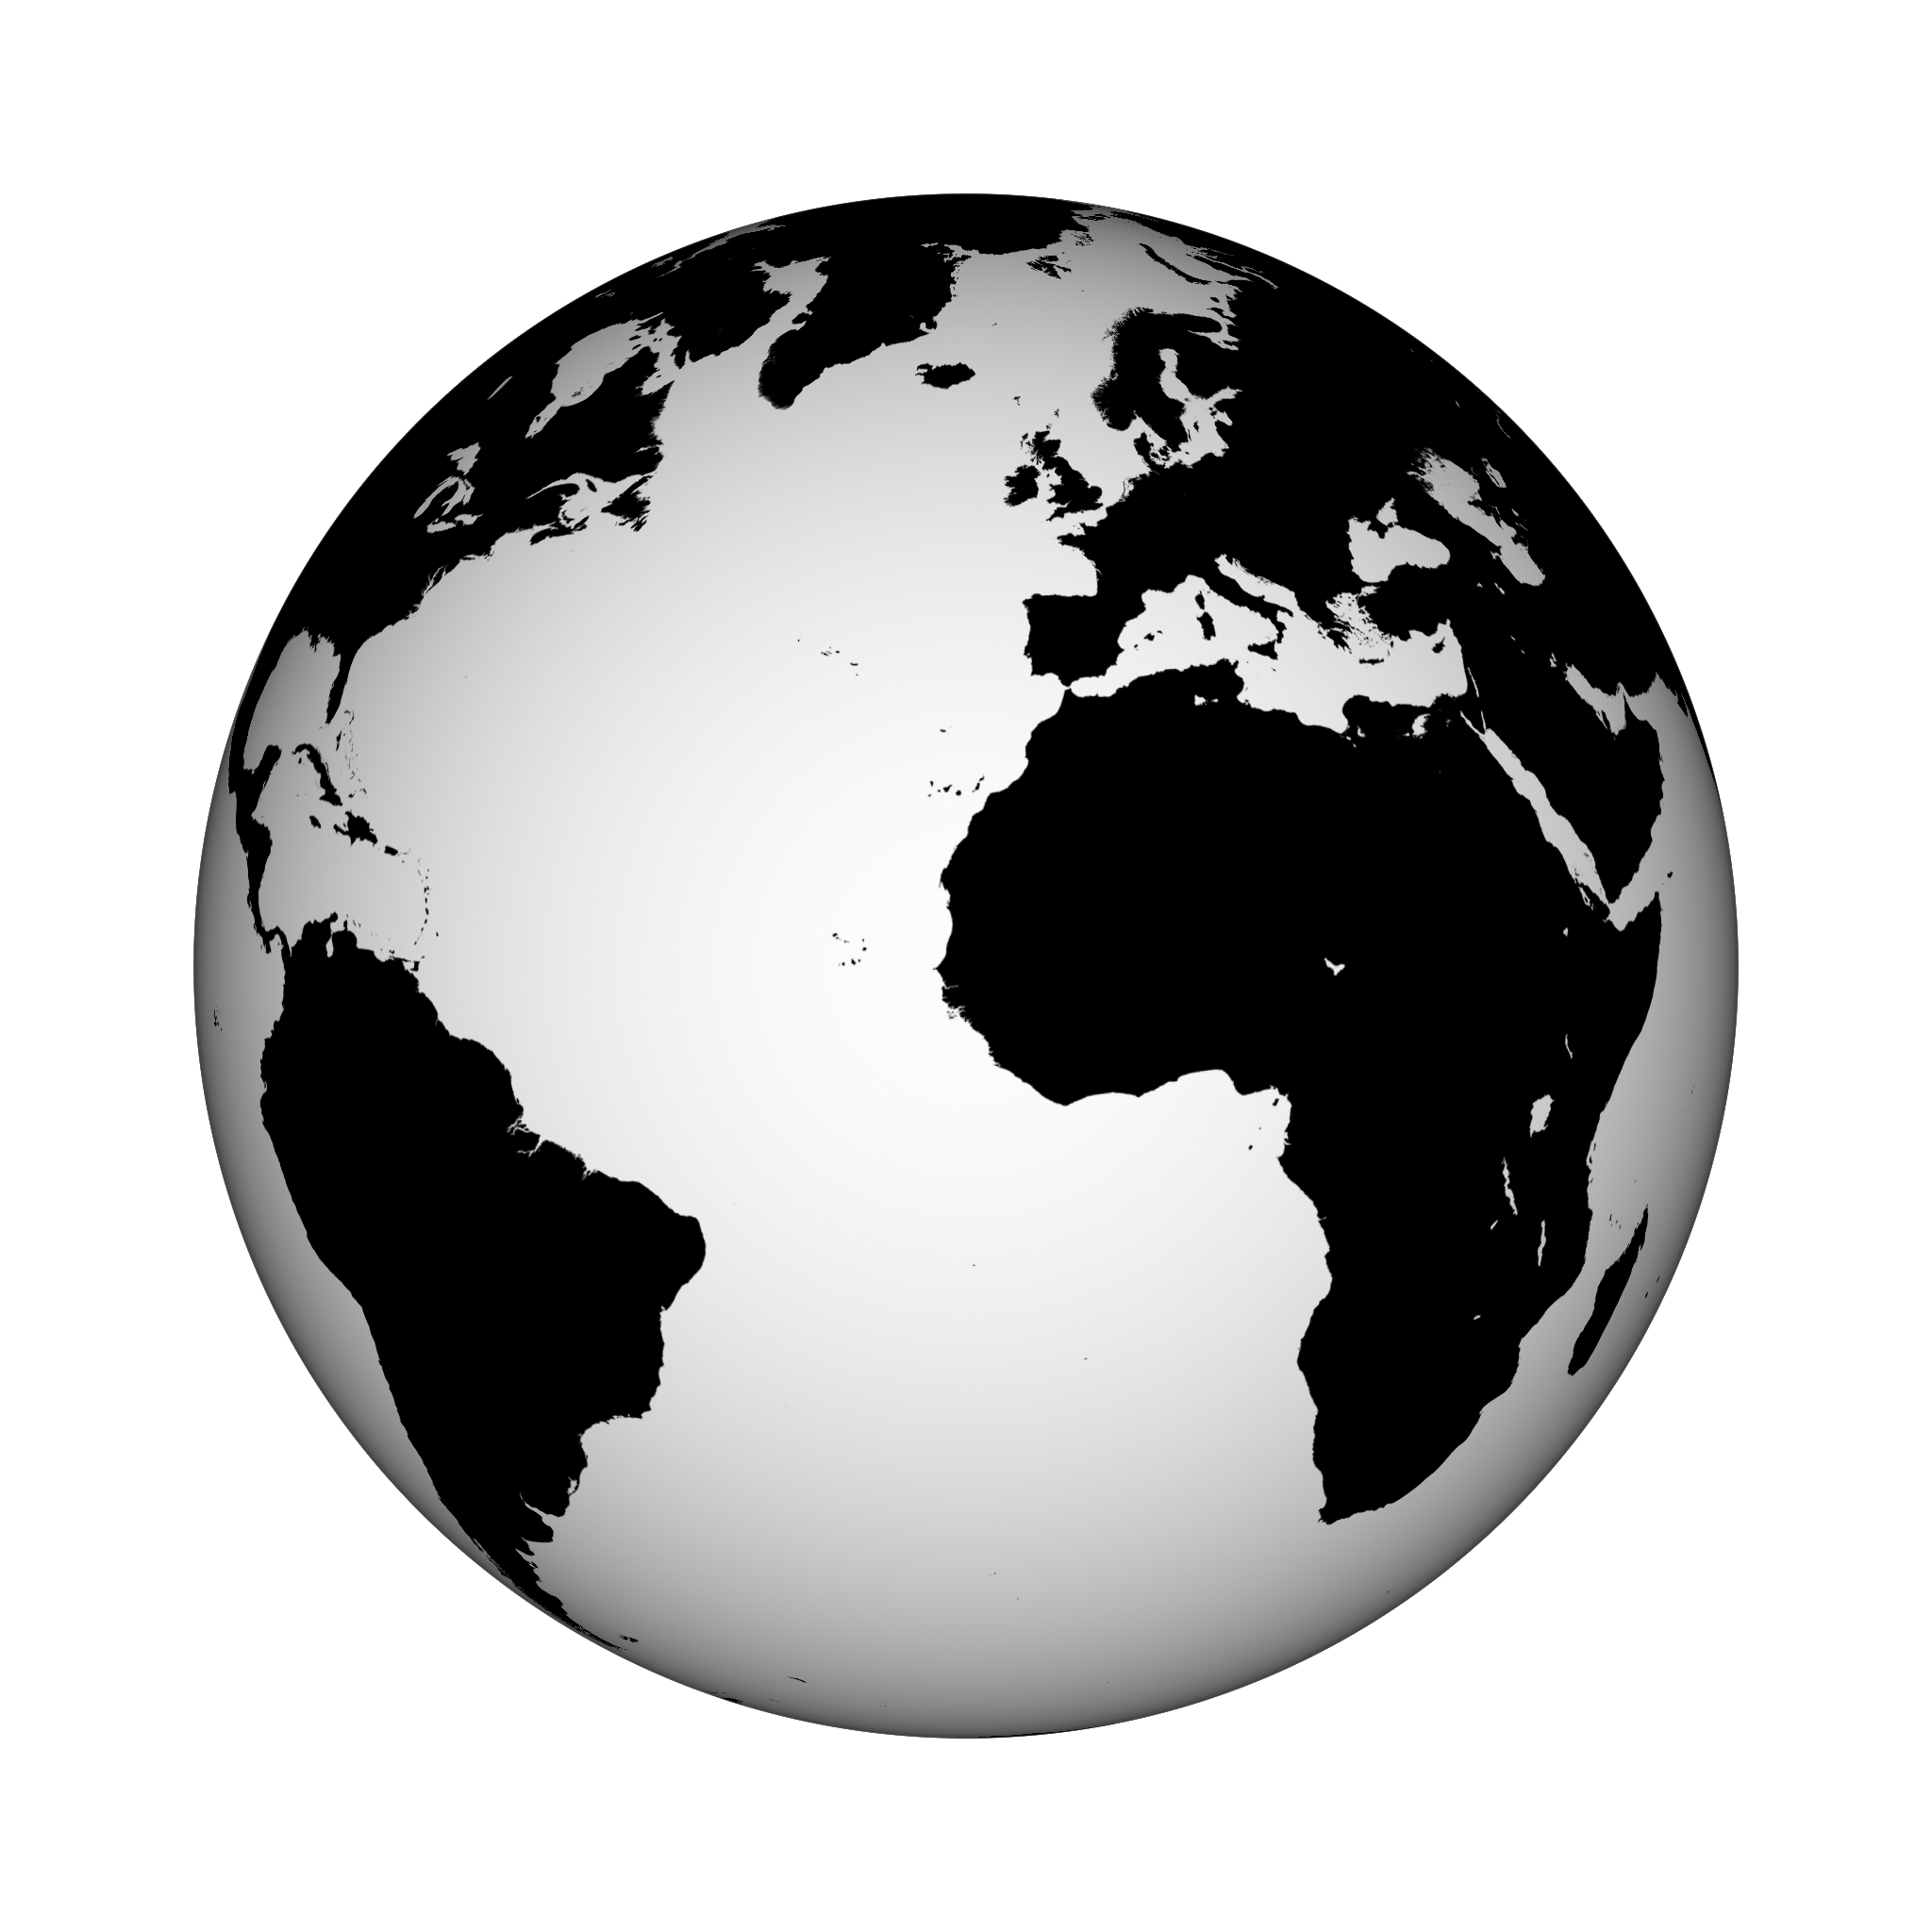 Black and white earth png. Transparent pictures free icons